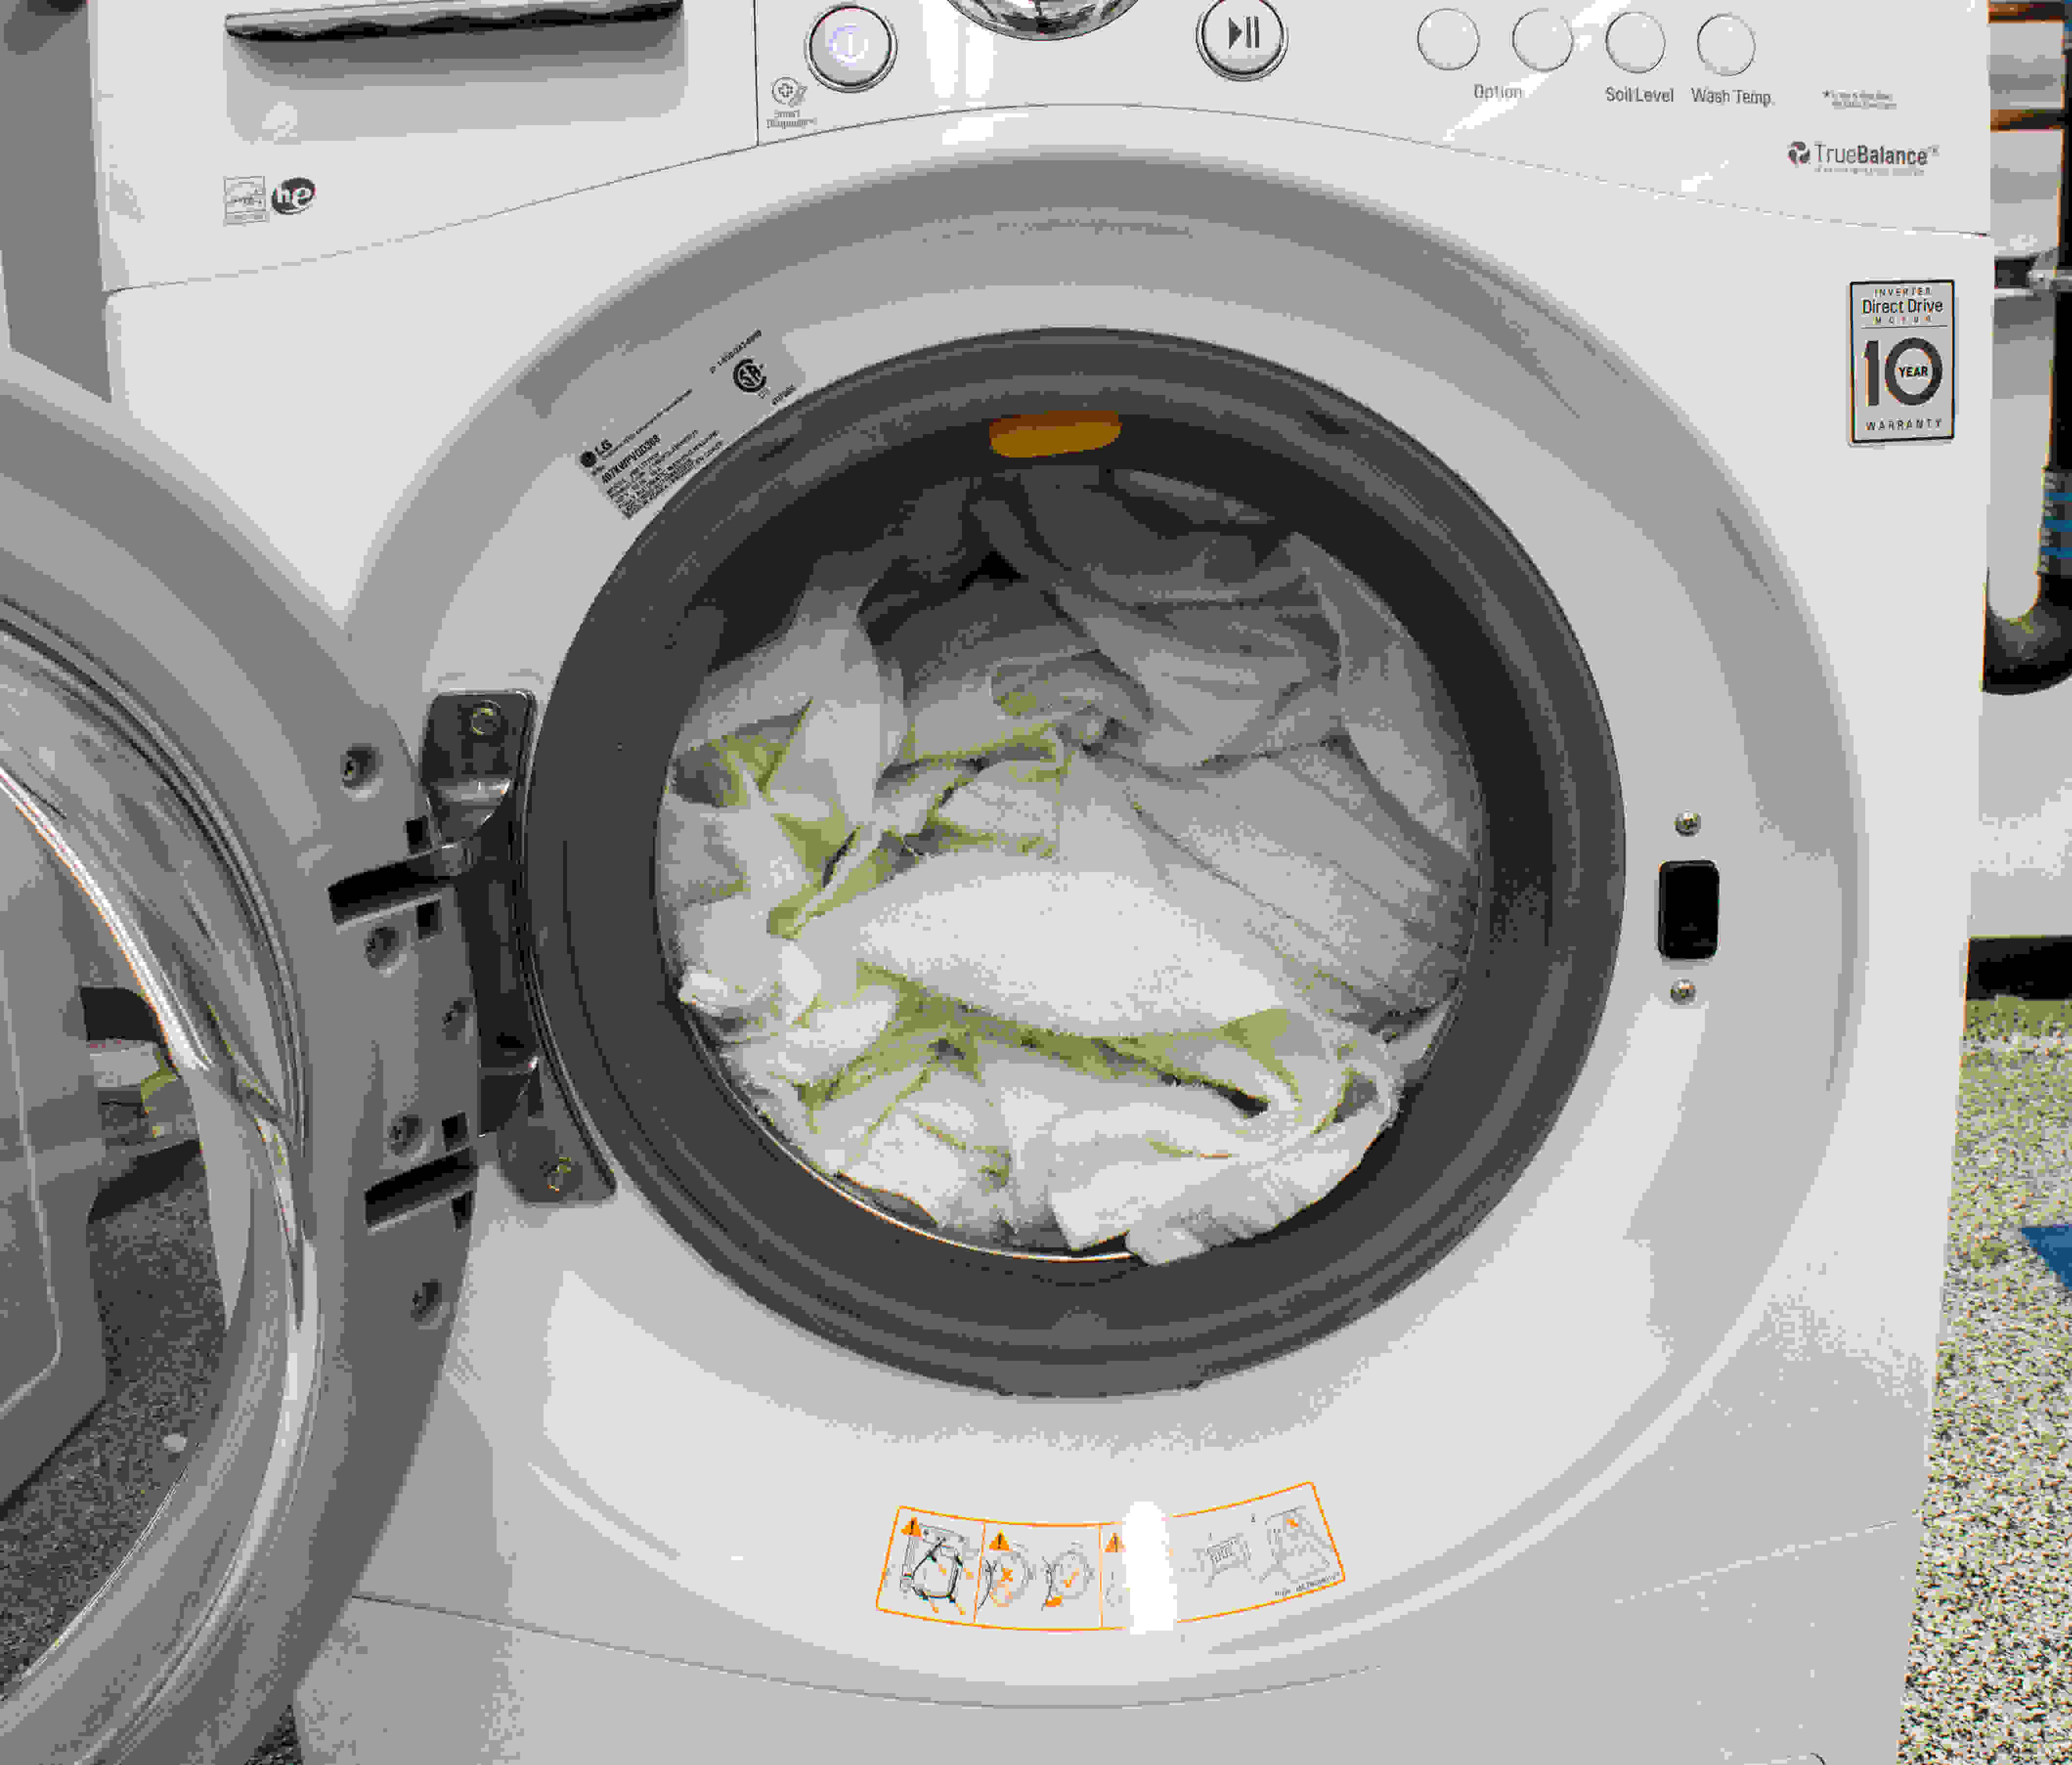 With just 2.3-cu.-ft. of capacity, you'd be able to fit just one basket of laundry into this washer.